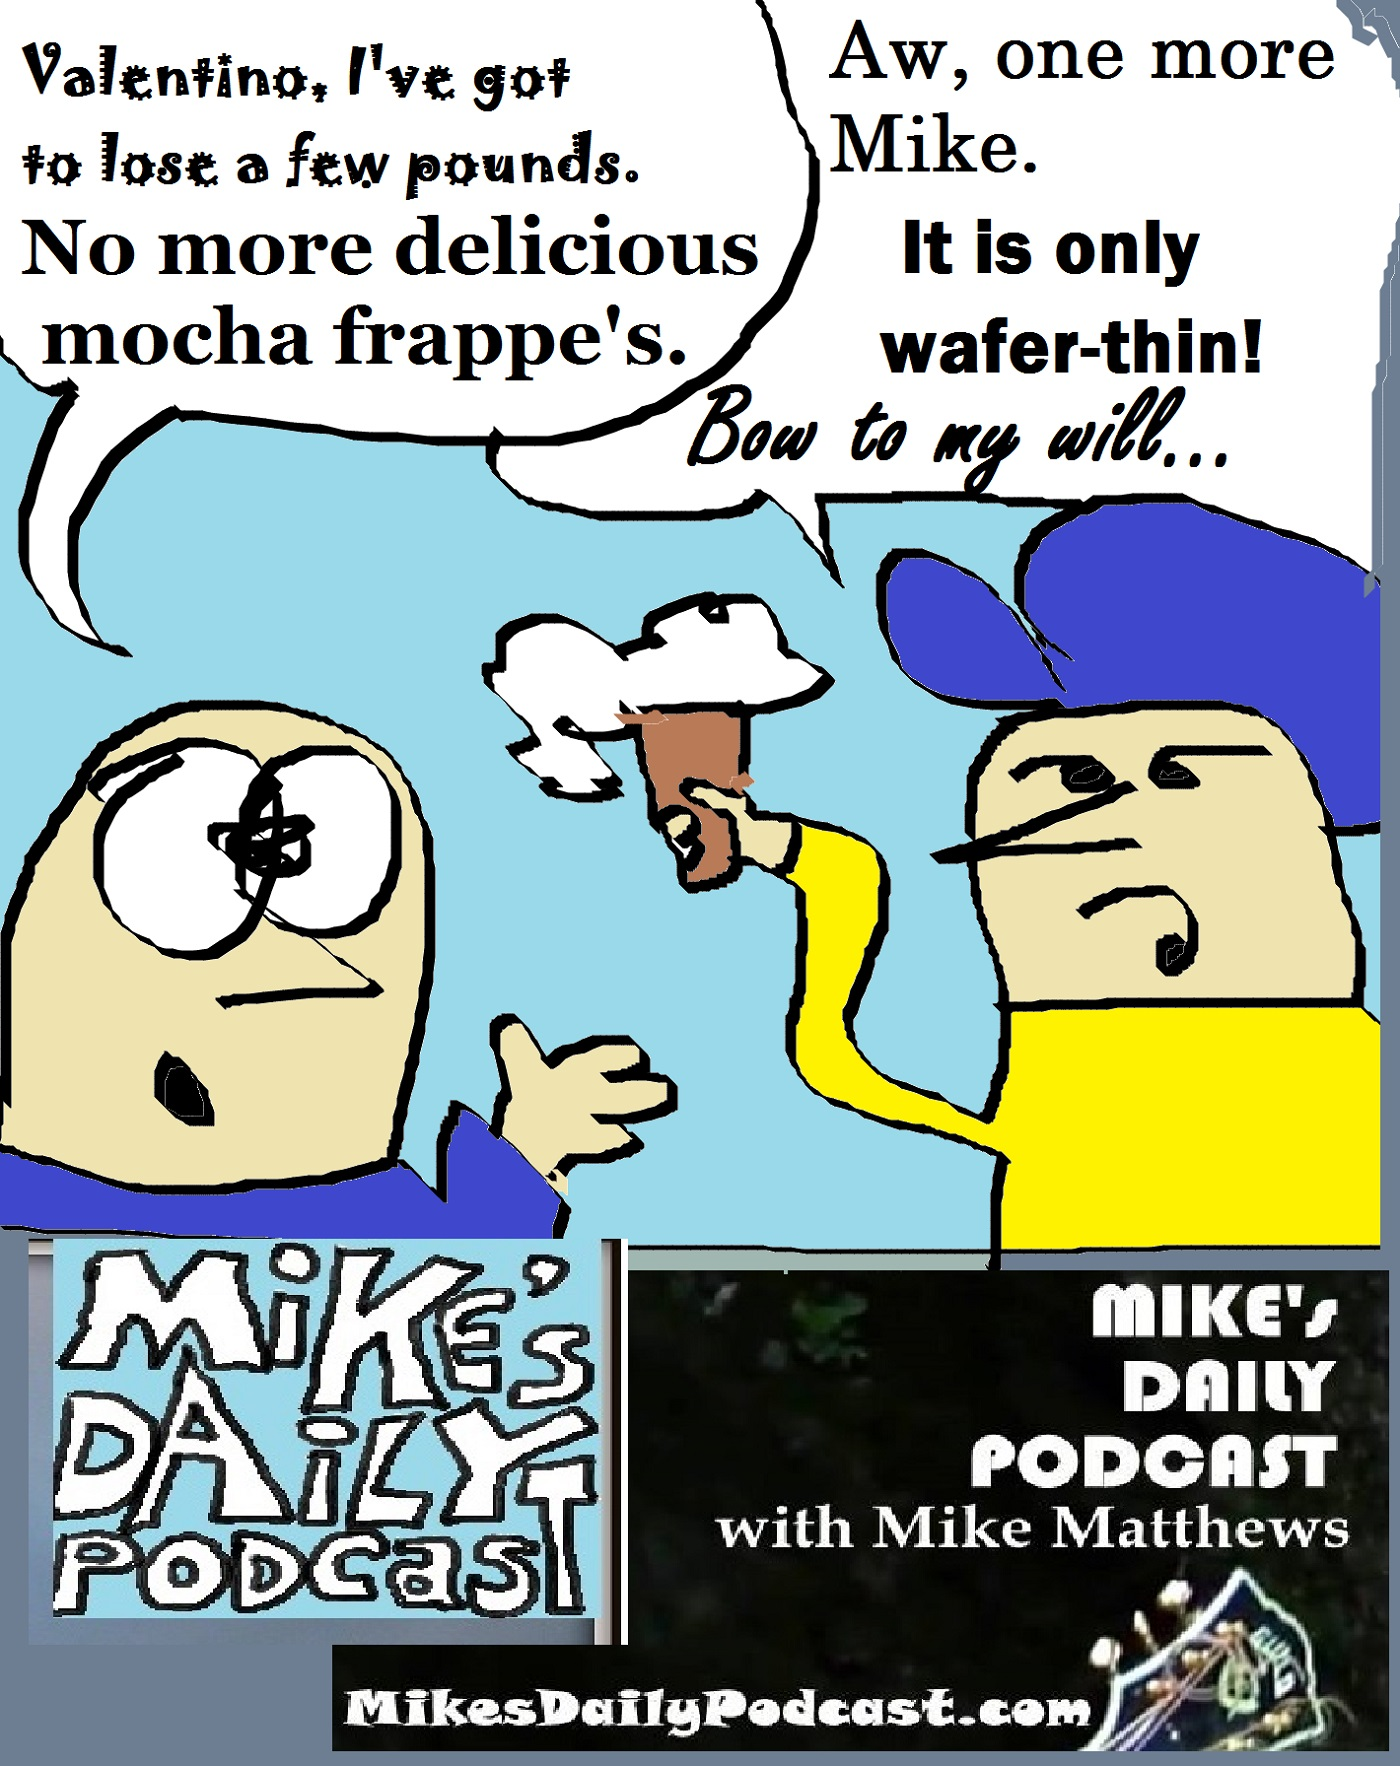 mikes-daily-podcast-1220-mocha-frappe